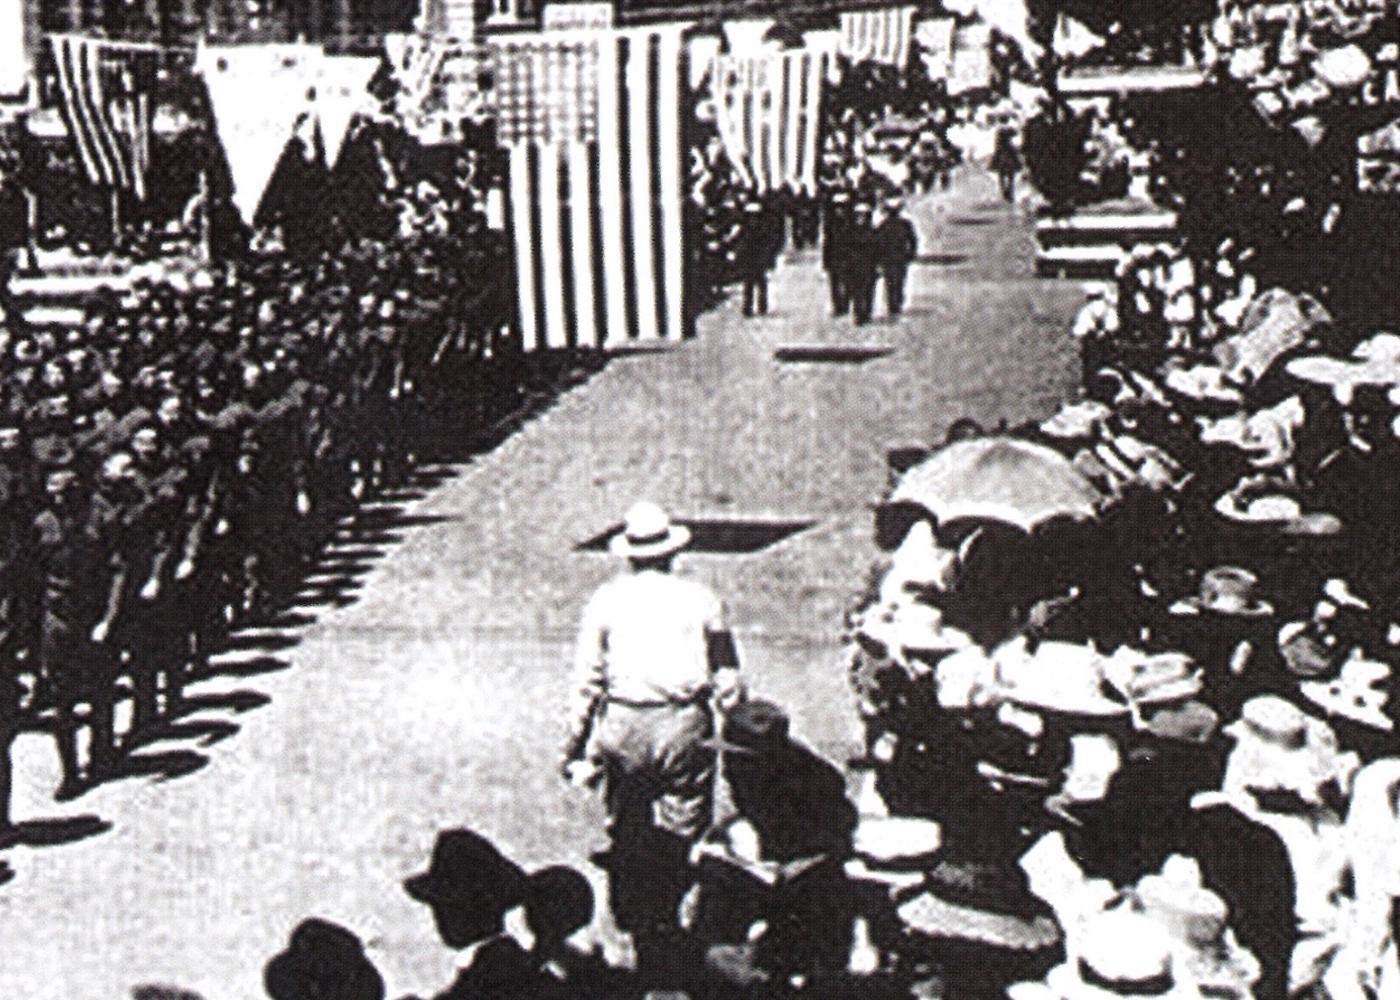 black and white photo of parade crowd featuring first A&W Root Beer stand in top righthand corner